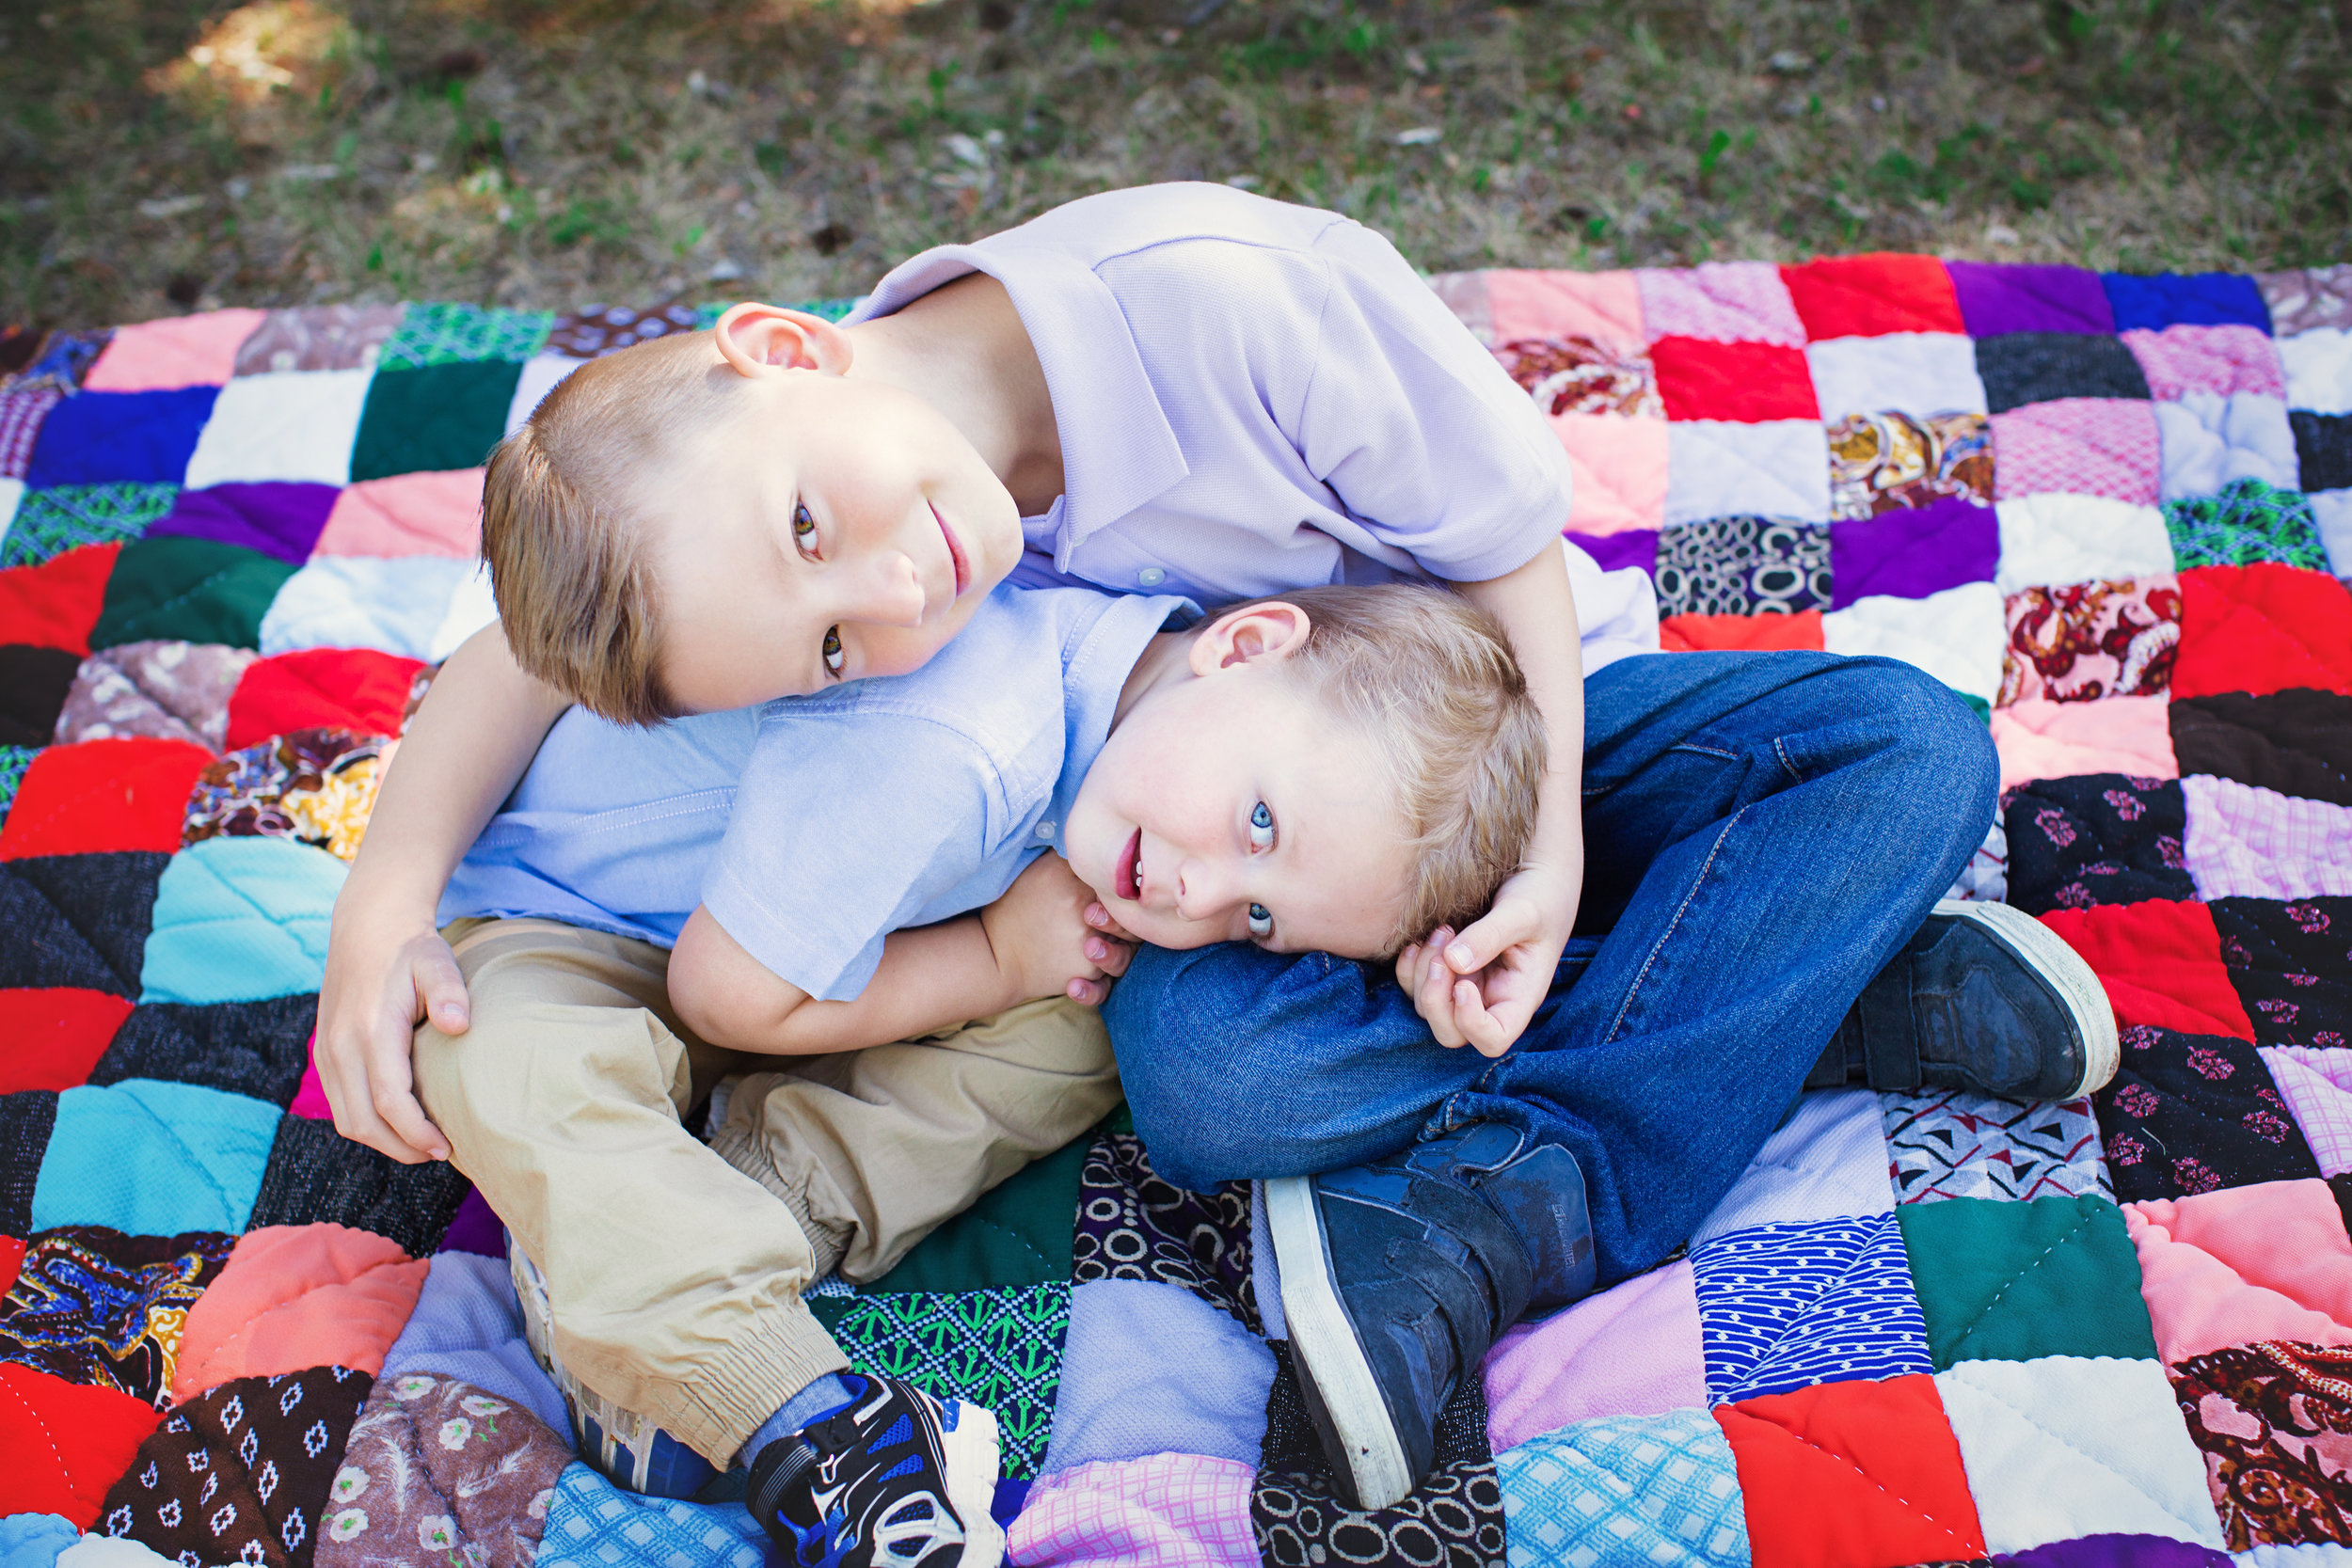 Brothers sitting on a blanket and hugging. Calgary Family photographer. Milashka Photography